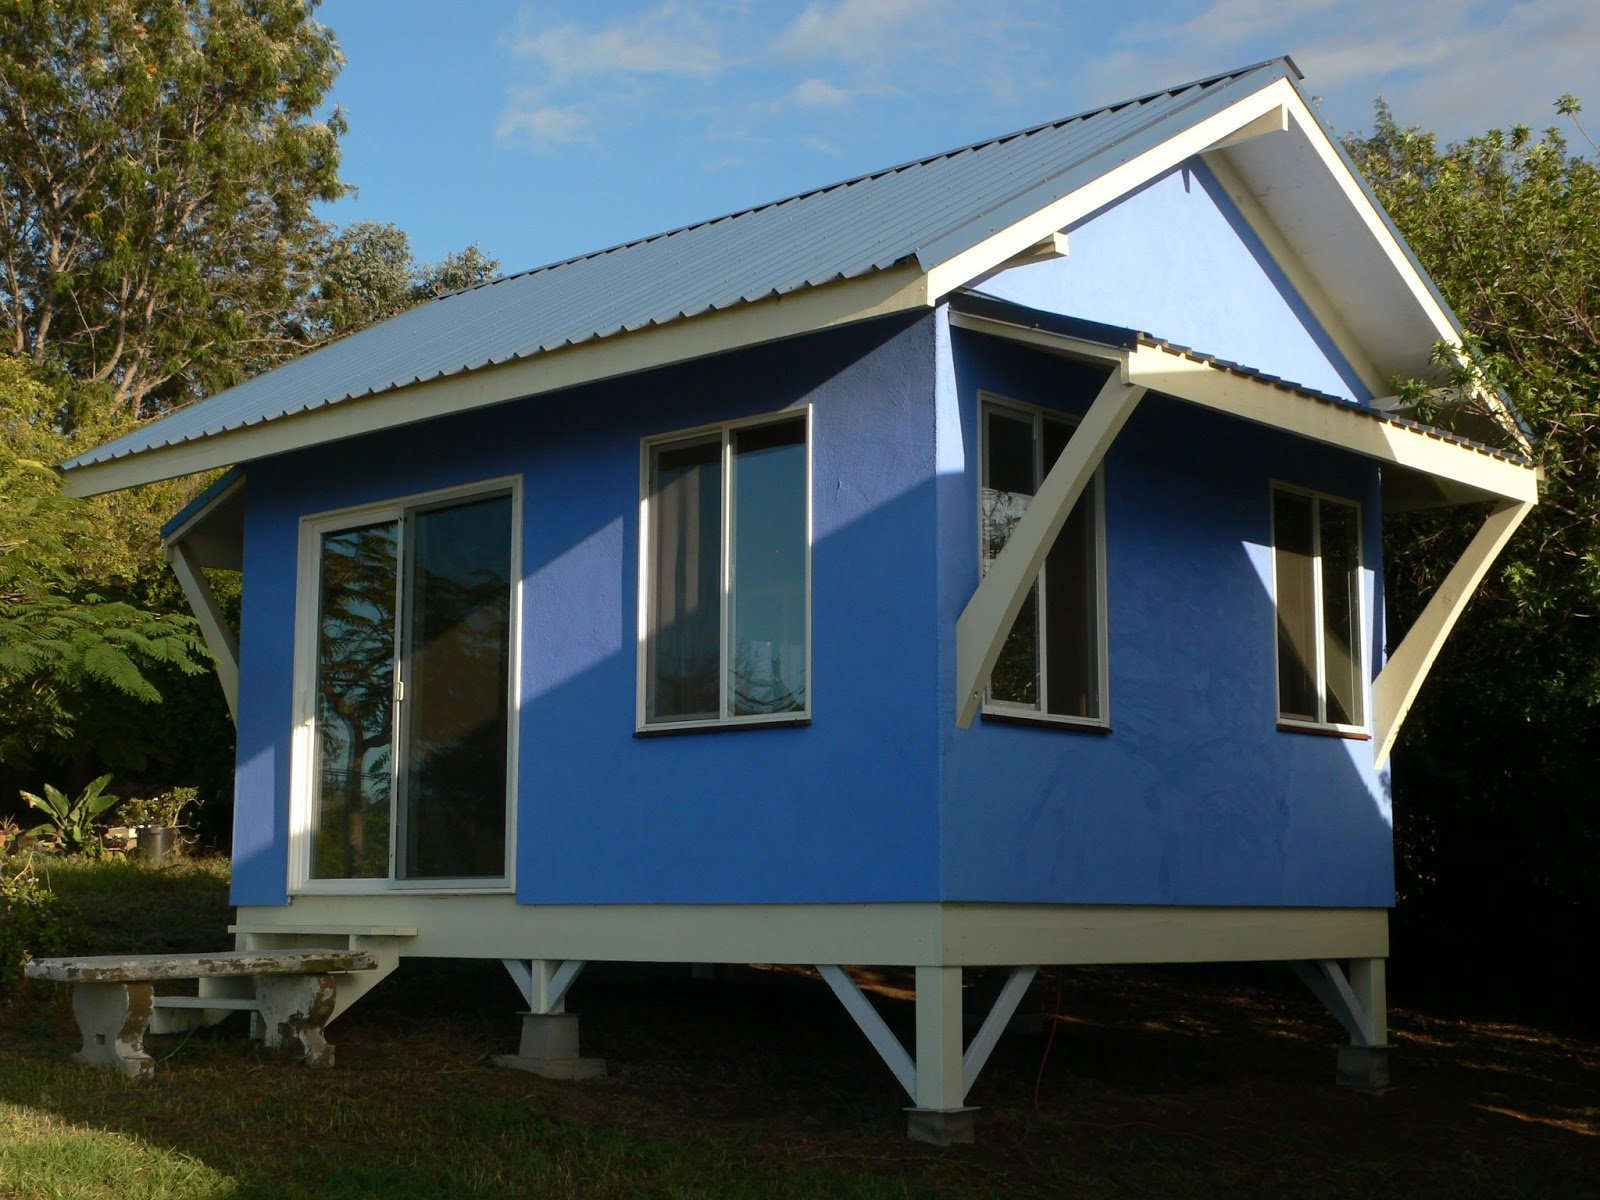 50 photos of small but beautiful and low cost houses that for Low cost home plans to build